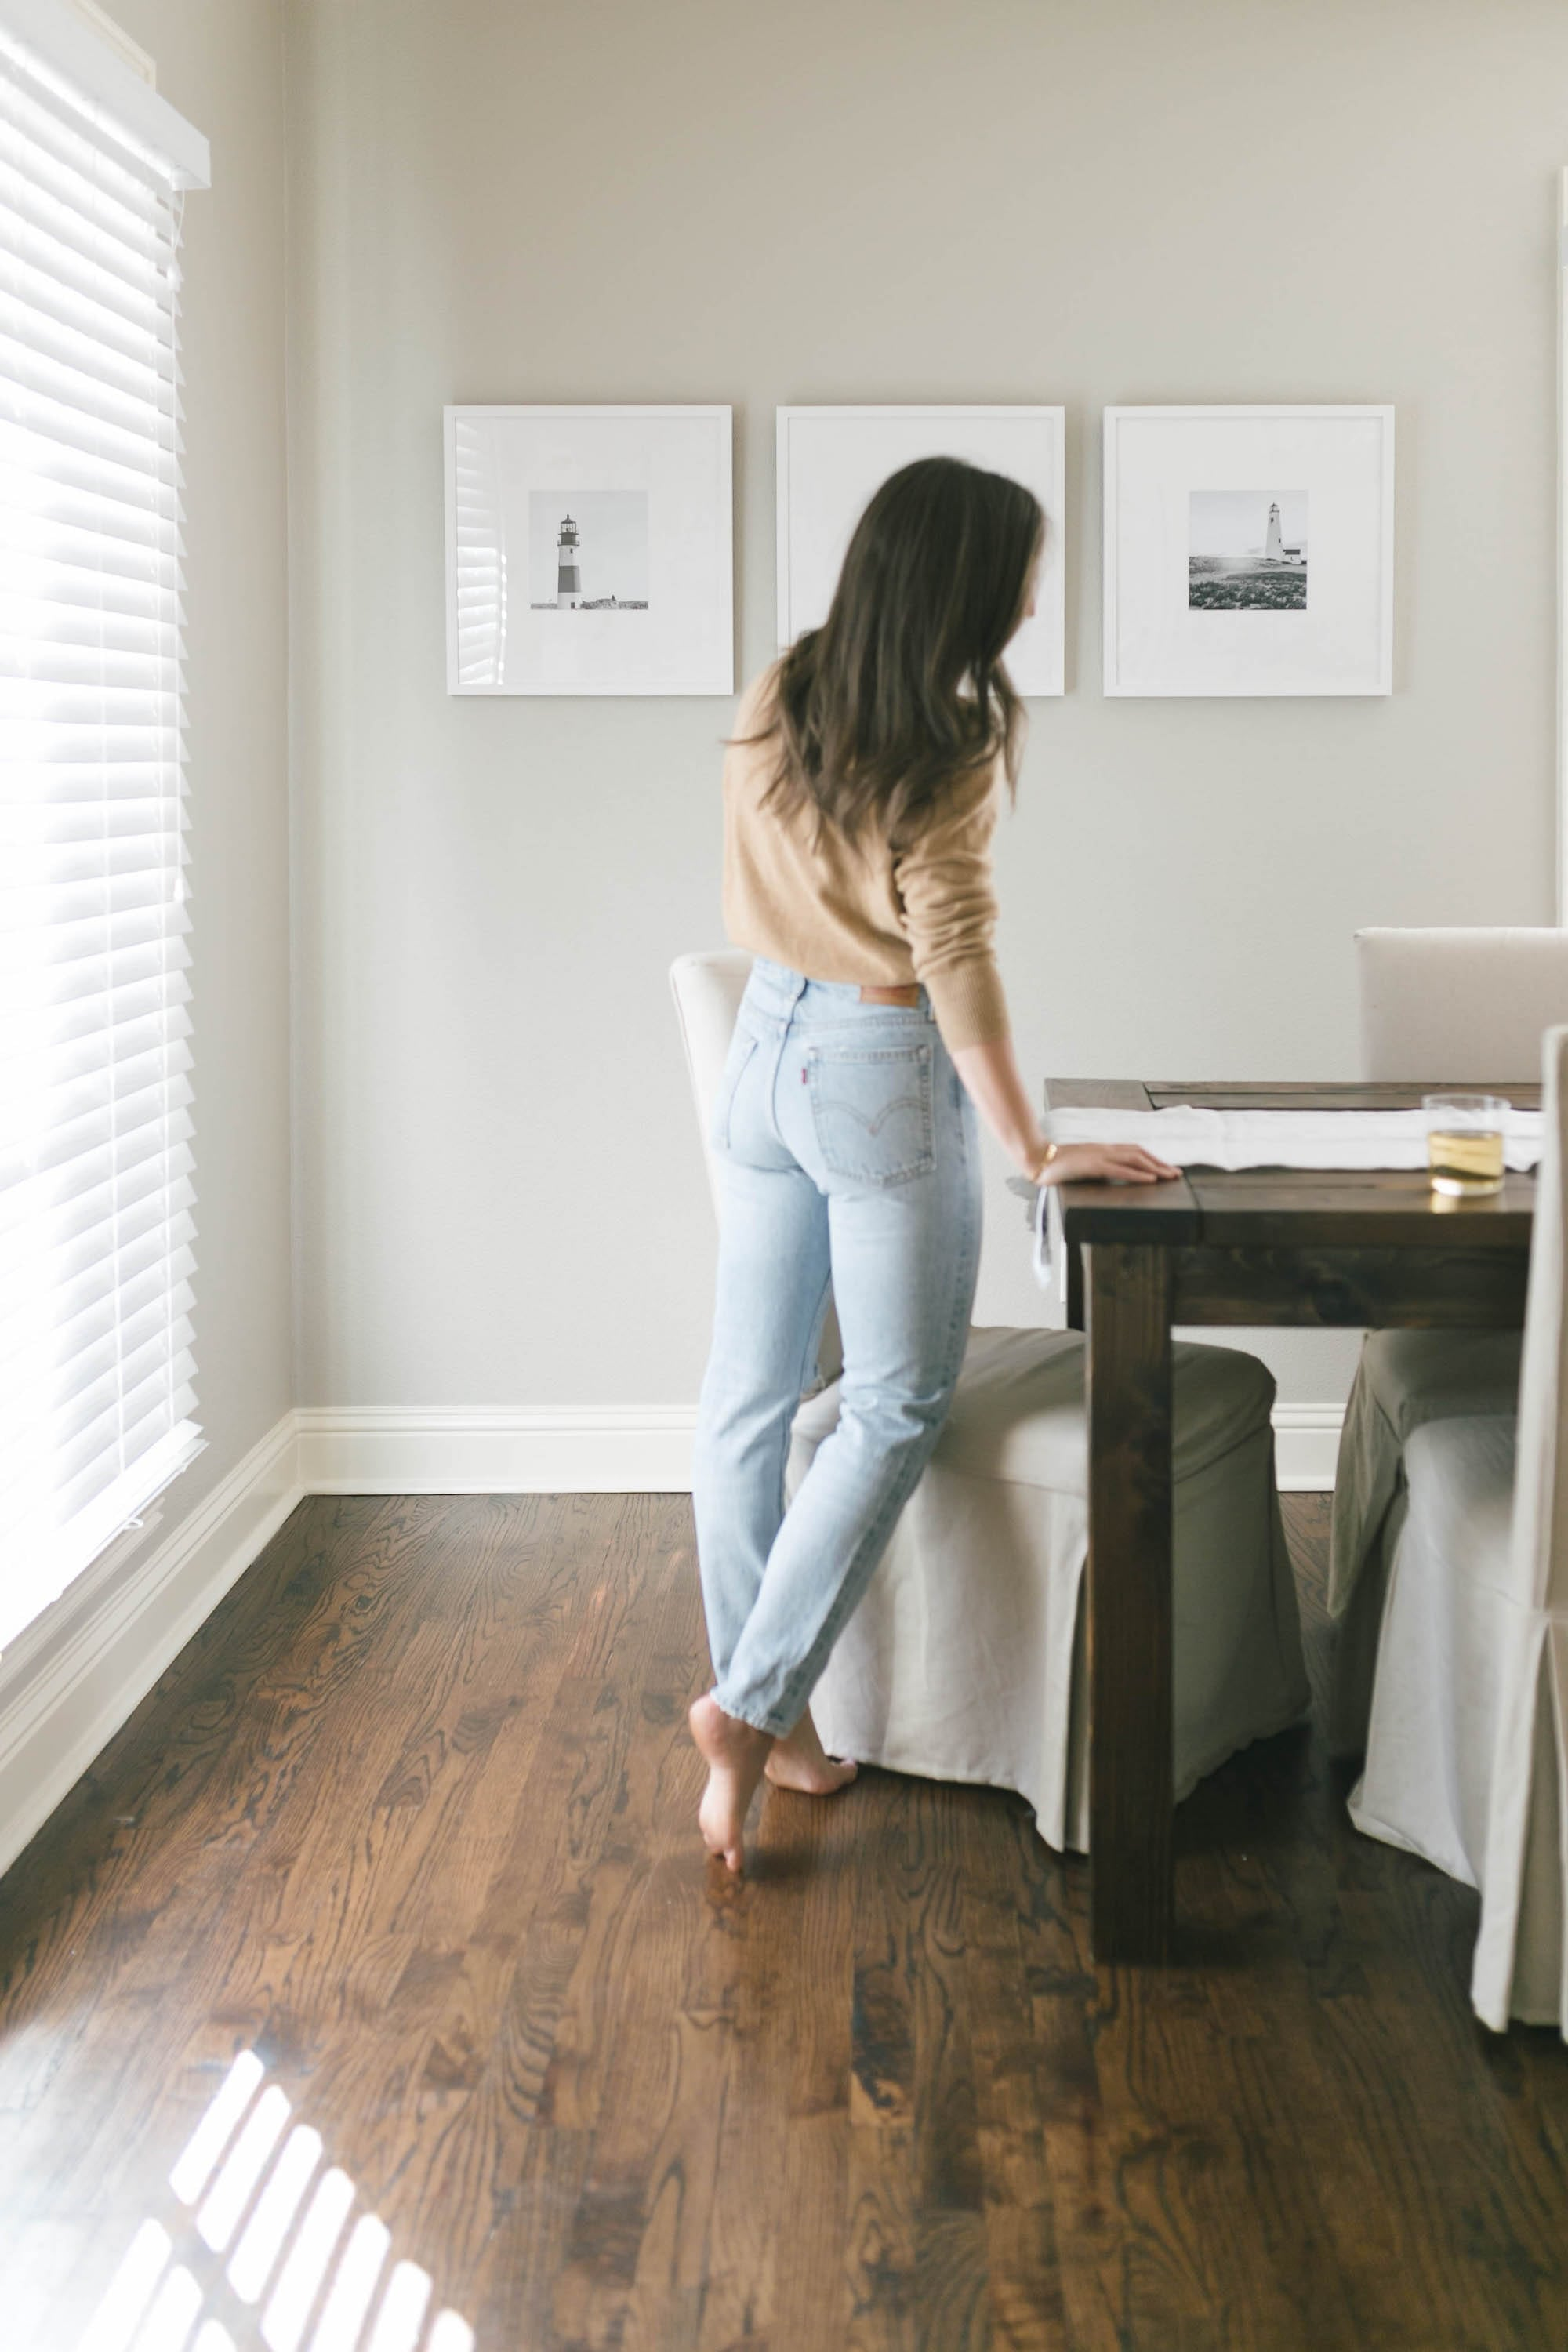 J.Crew Cashmere Sweater and Levi Jeans